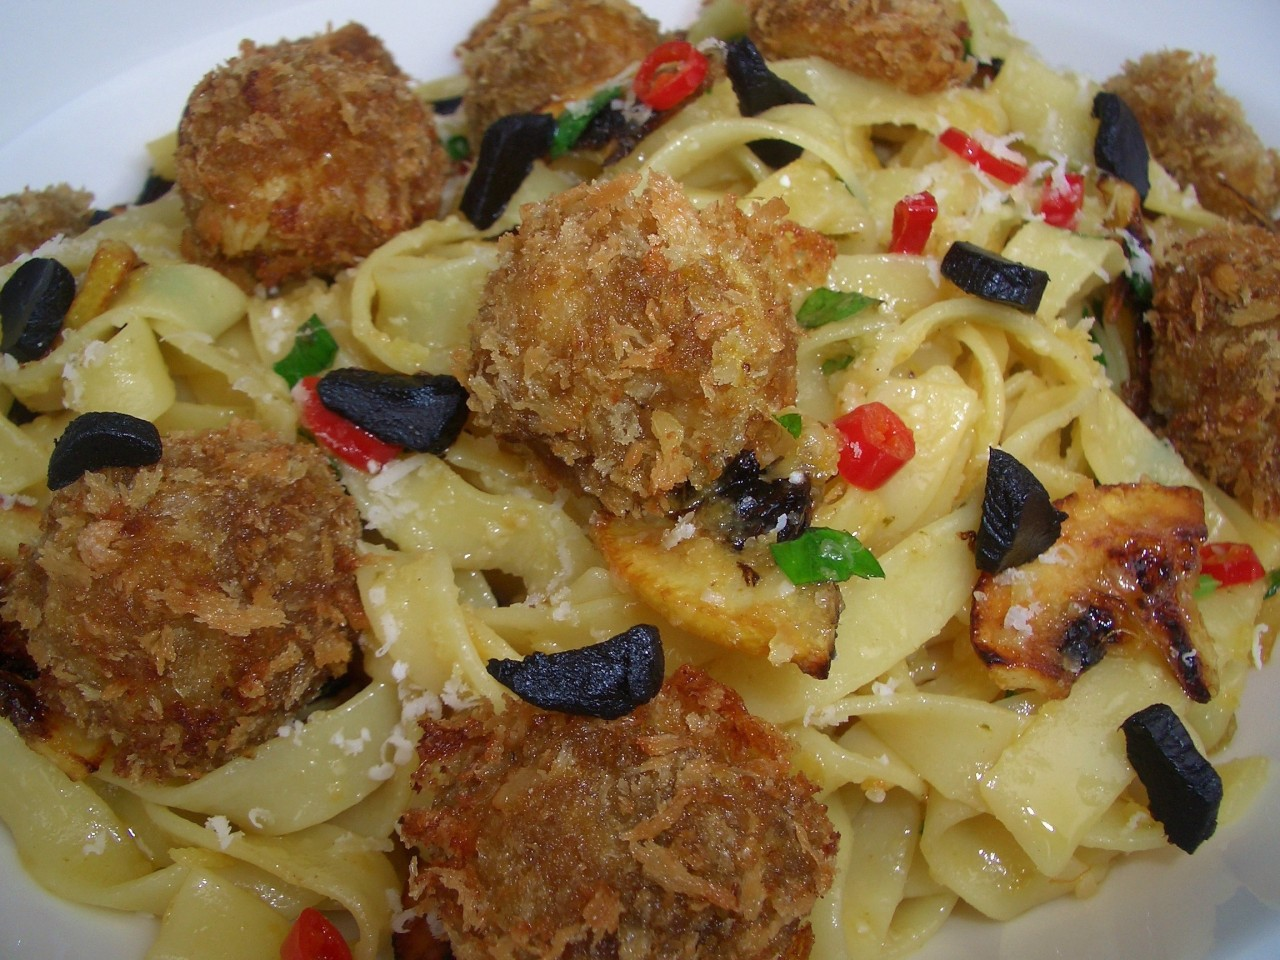 Fettuccine con Limón Frito, Pollo y Chile – Fettucchine with Fried Lemon, Chicken and ChileFlakes